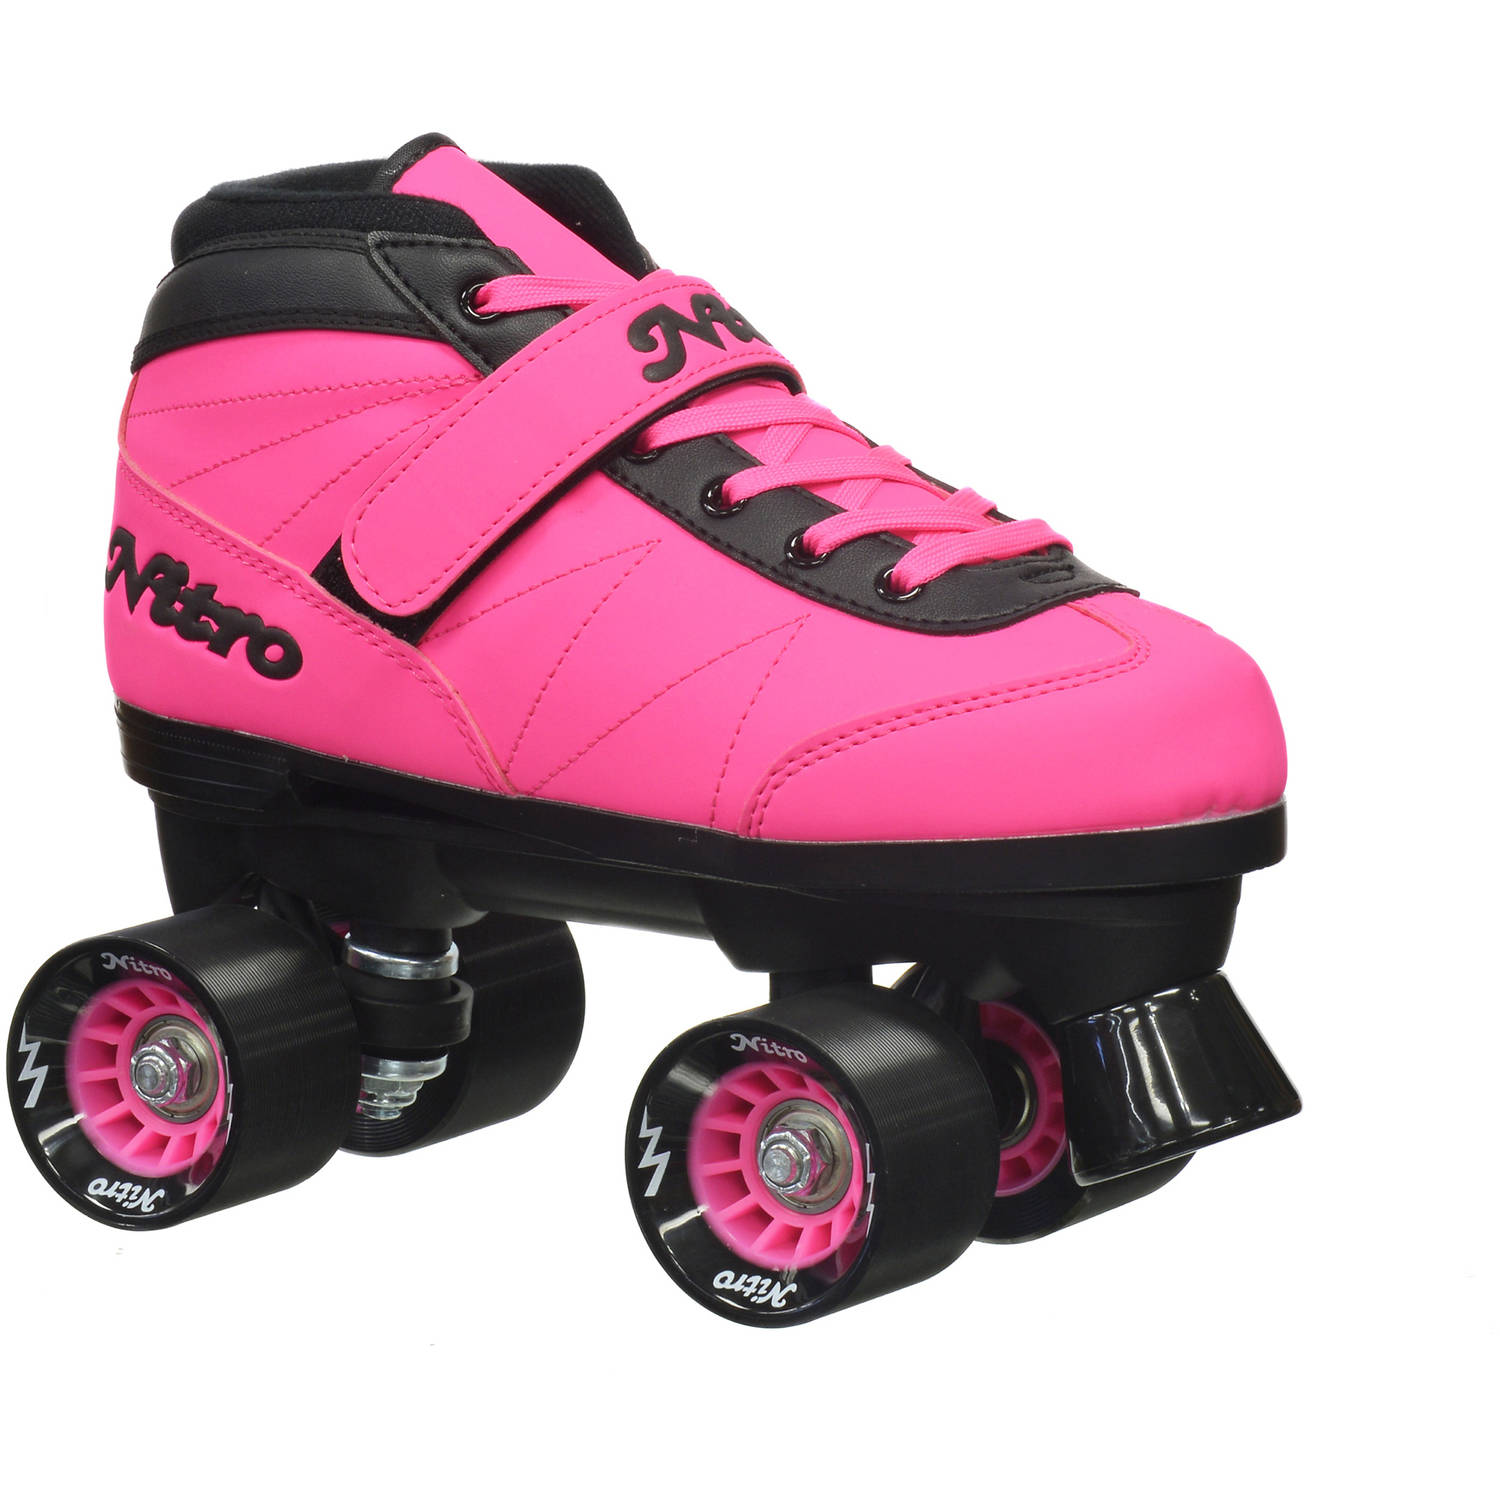 Epic Women's Nitro Turbo Pink Quad Speed Roller Skates by Epic Skates